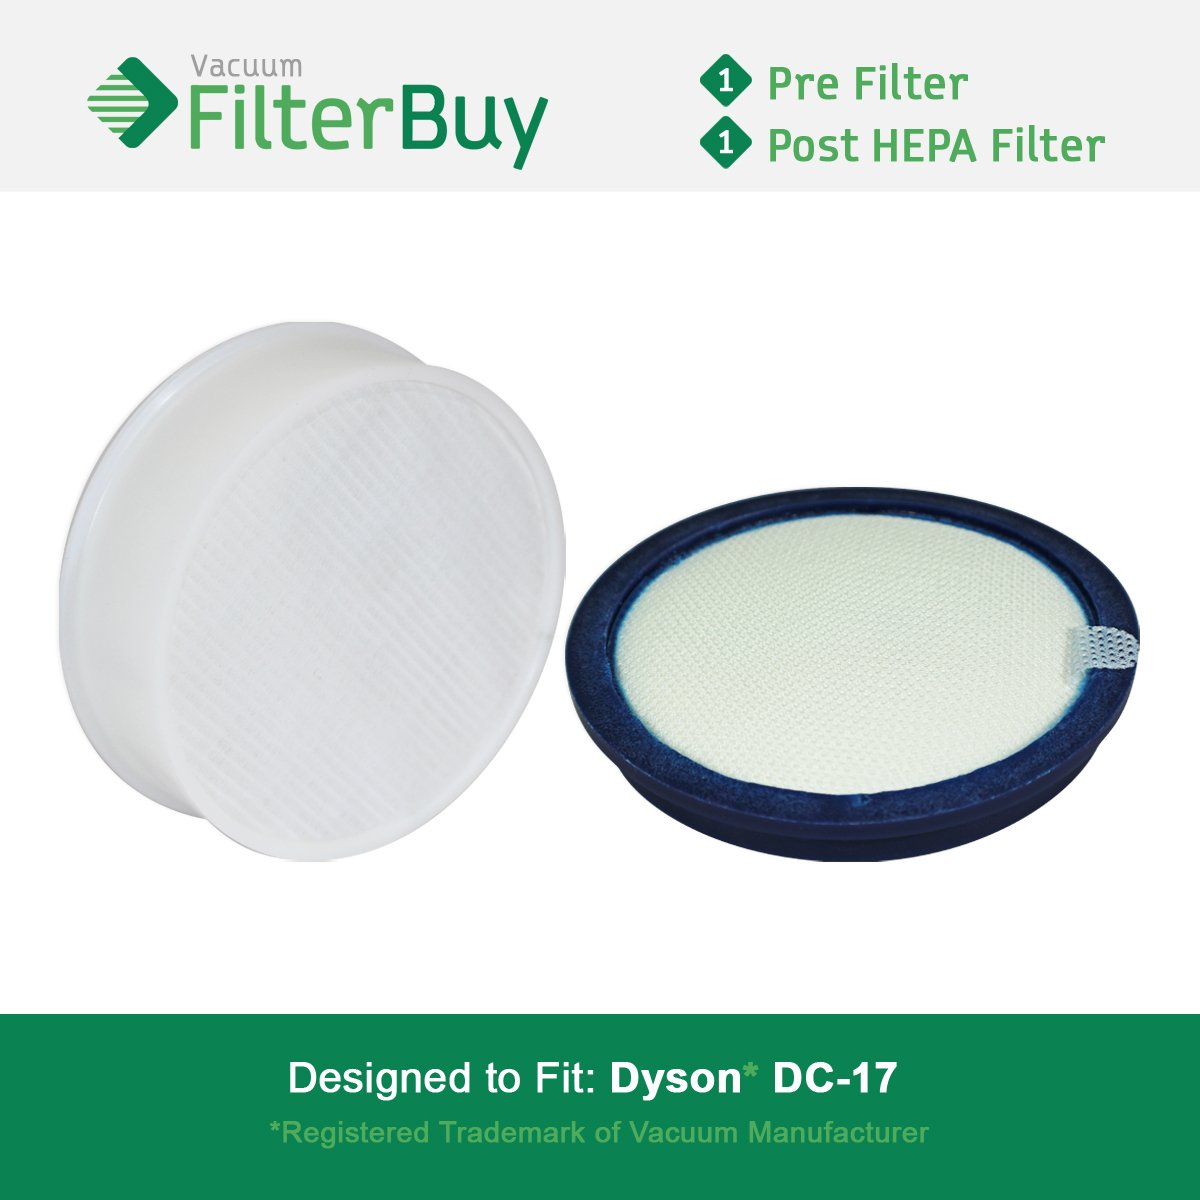 FilterBuy Dyson DC17 (DC-17) Compatible Filter Kit, Part #'s 911236-01 & 911235-01. Designed by FilterBuy to fit Dyson DC17 Upright Vacuum Cleaners.